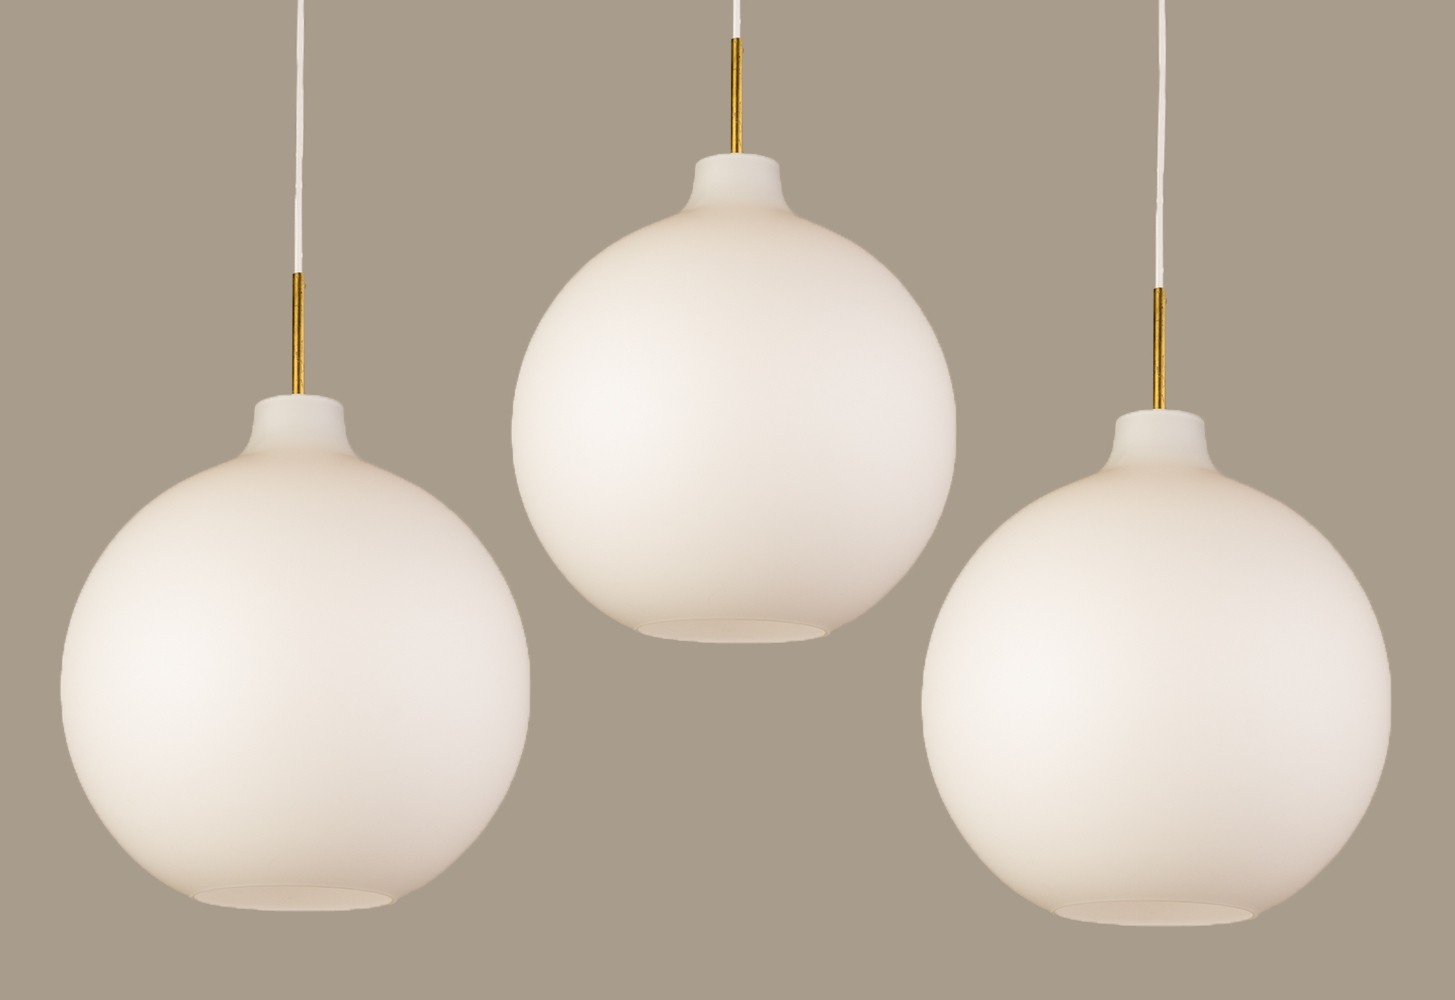 Set of 3 Satellite hanging lamps by Vilhelm Wohlert for Louis Poulsen, 1960s